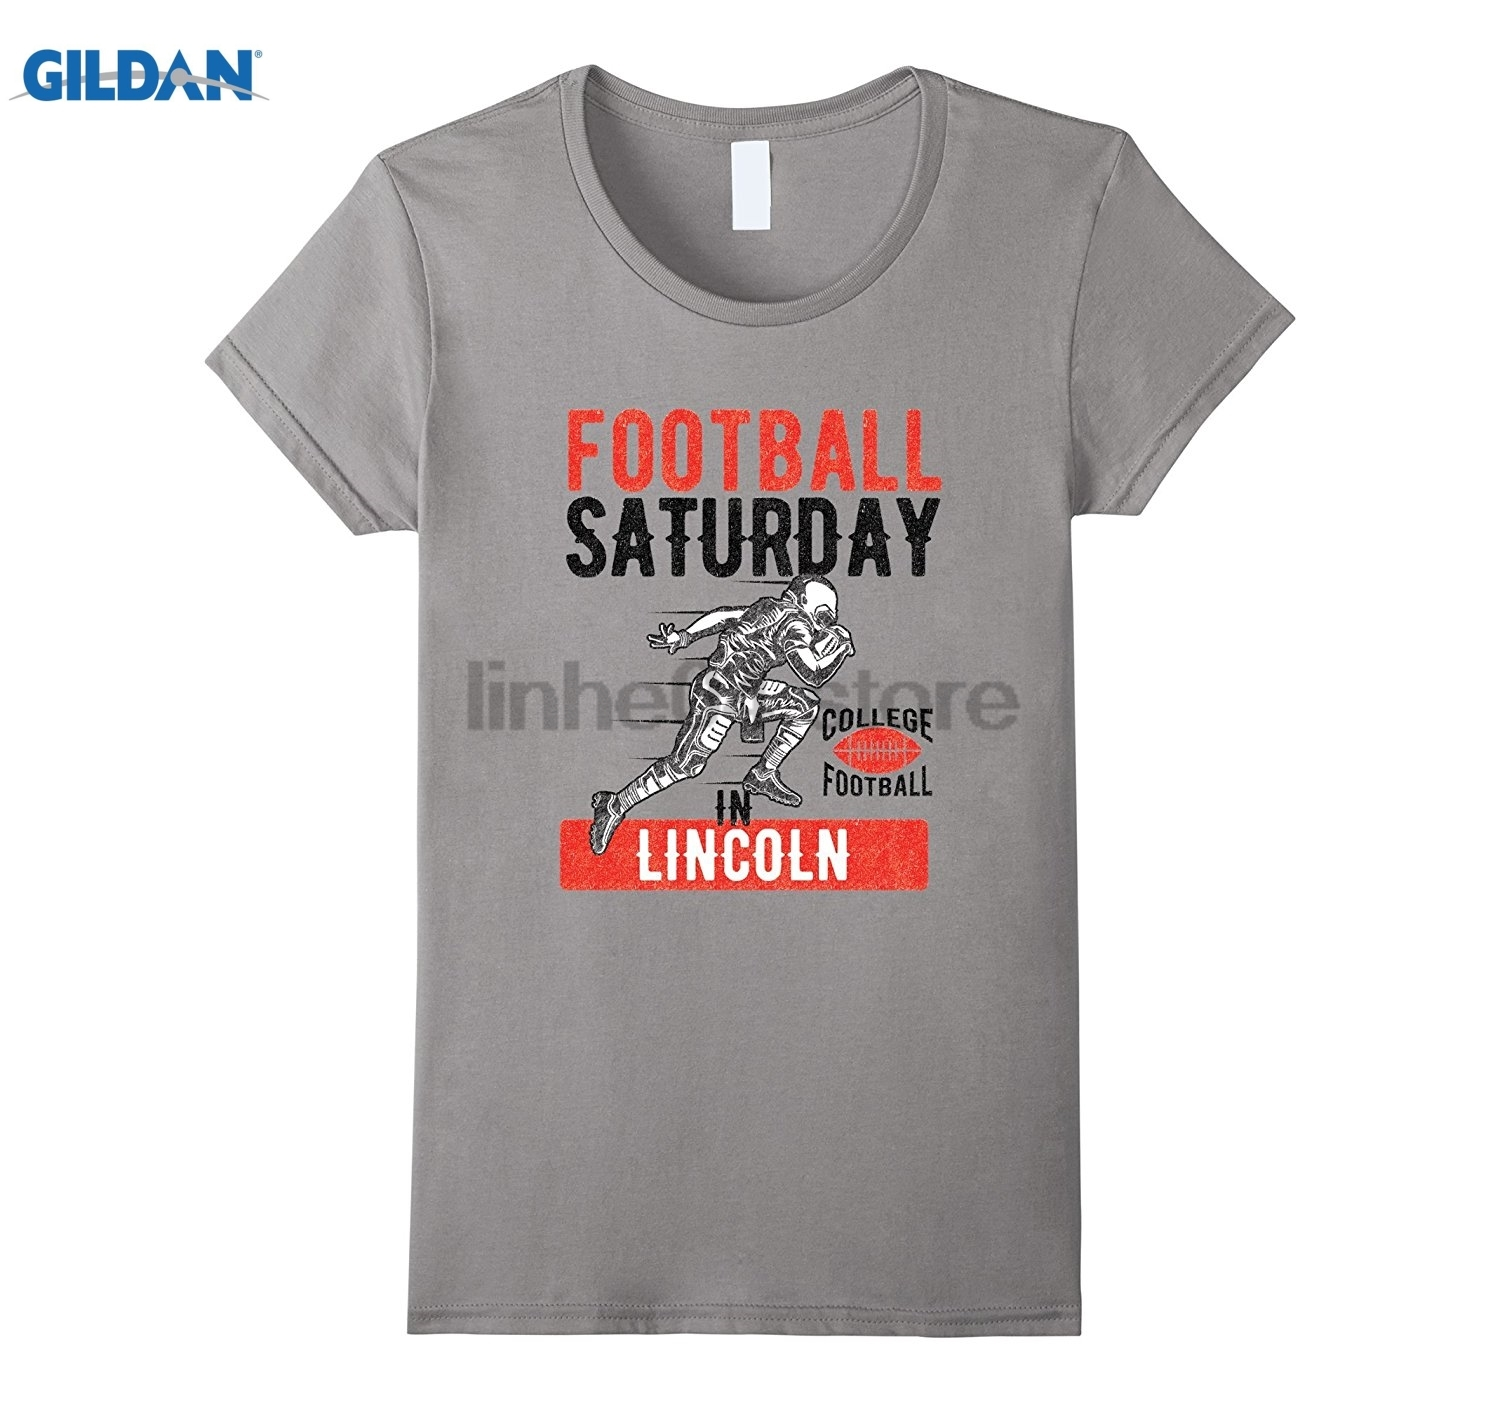 GILDAN Saturday in Lincoln NE Game Day Tshirt Hot Womens T-shirt